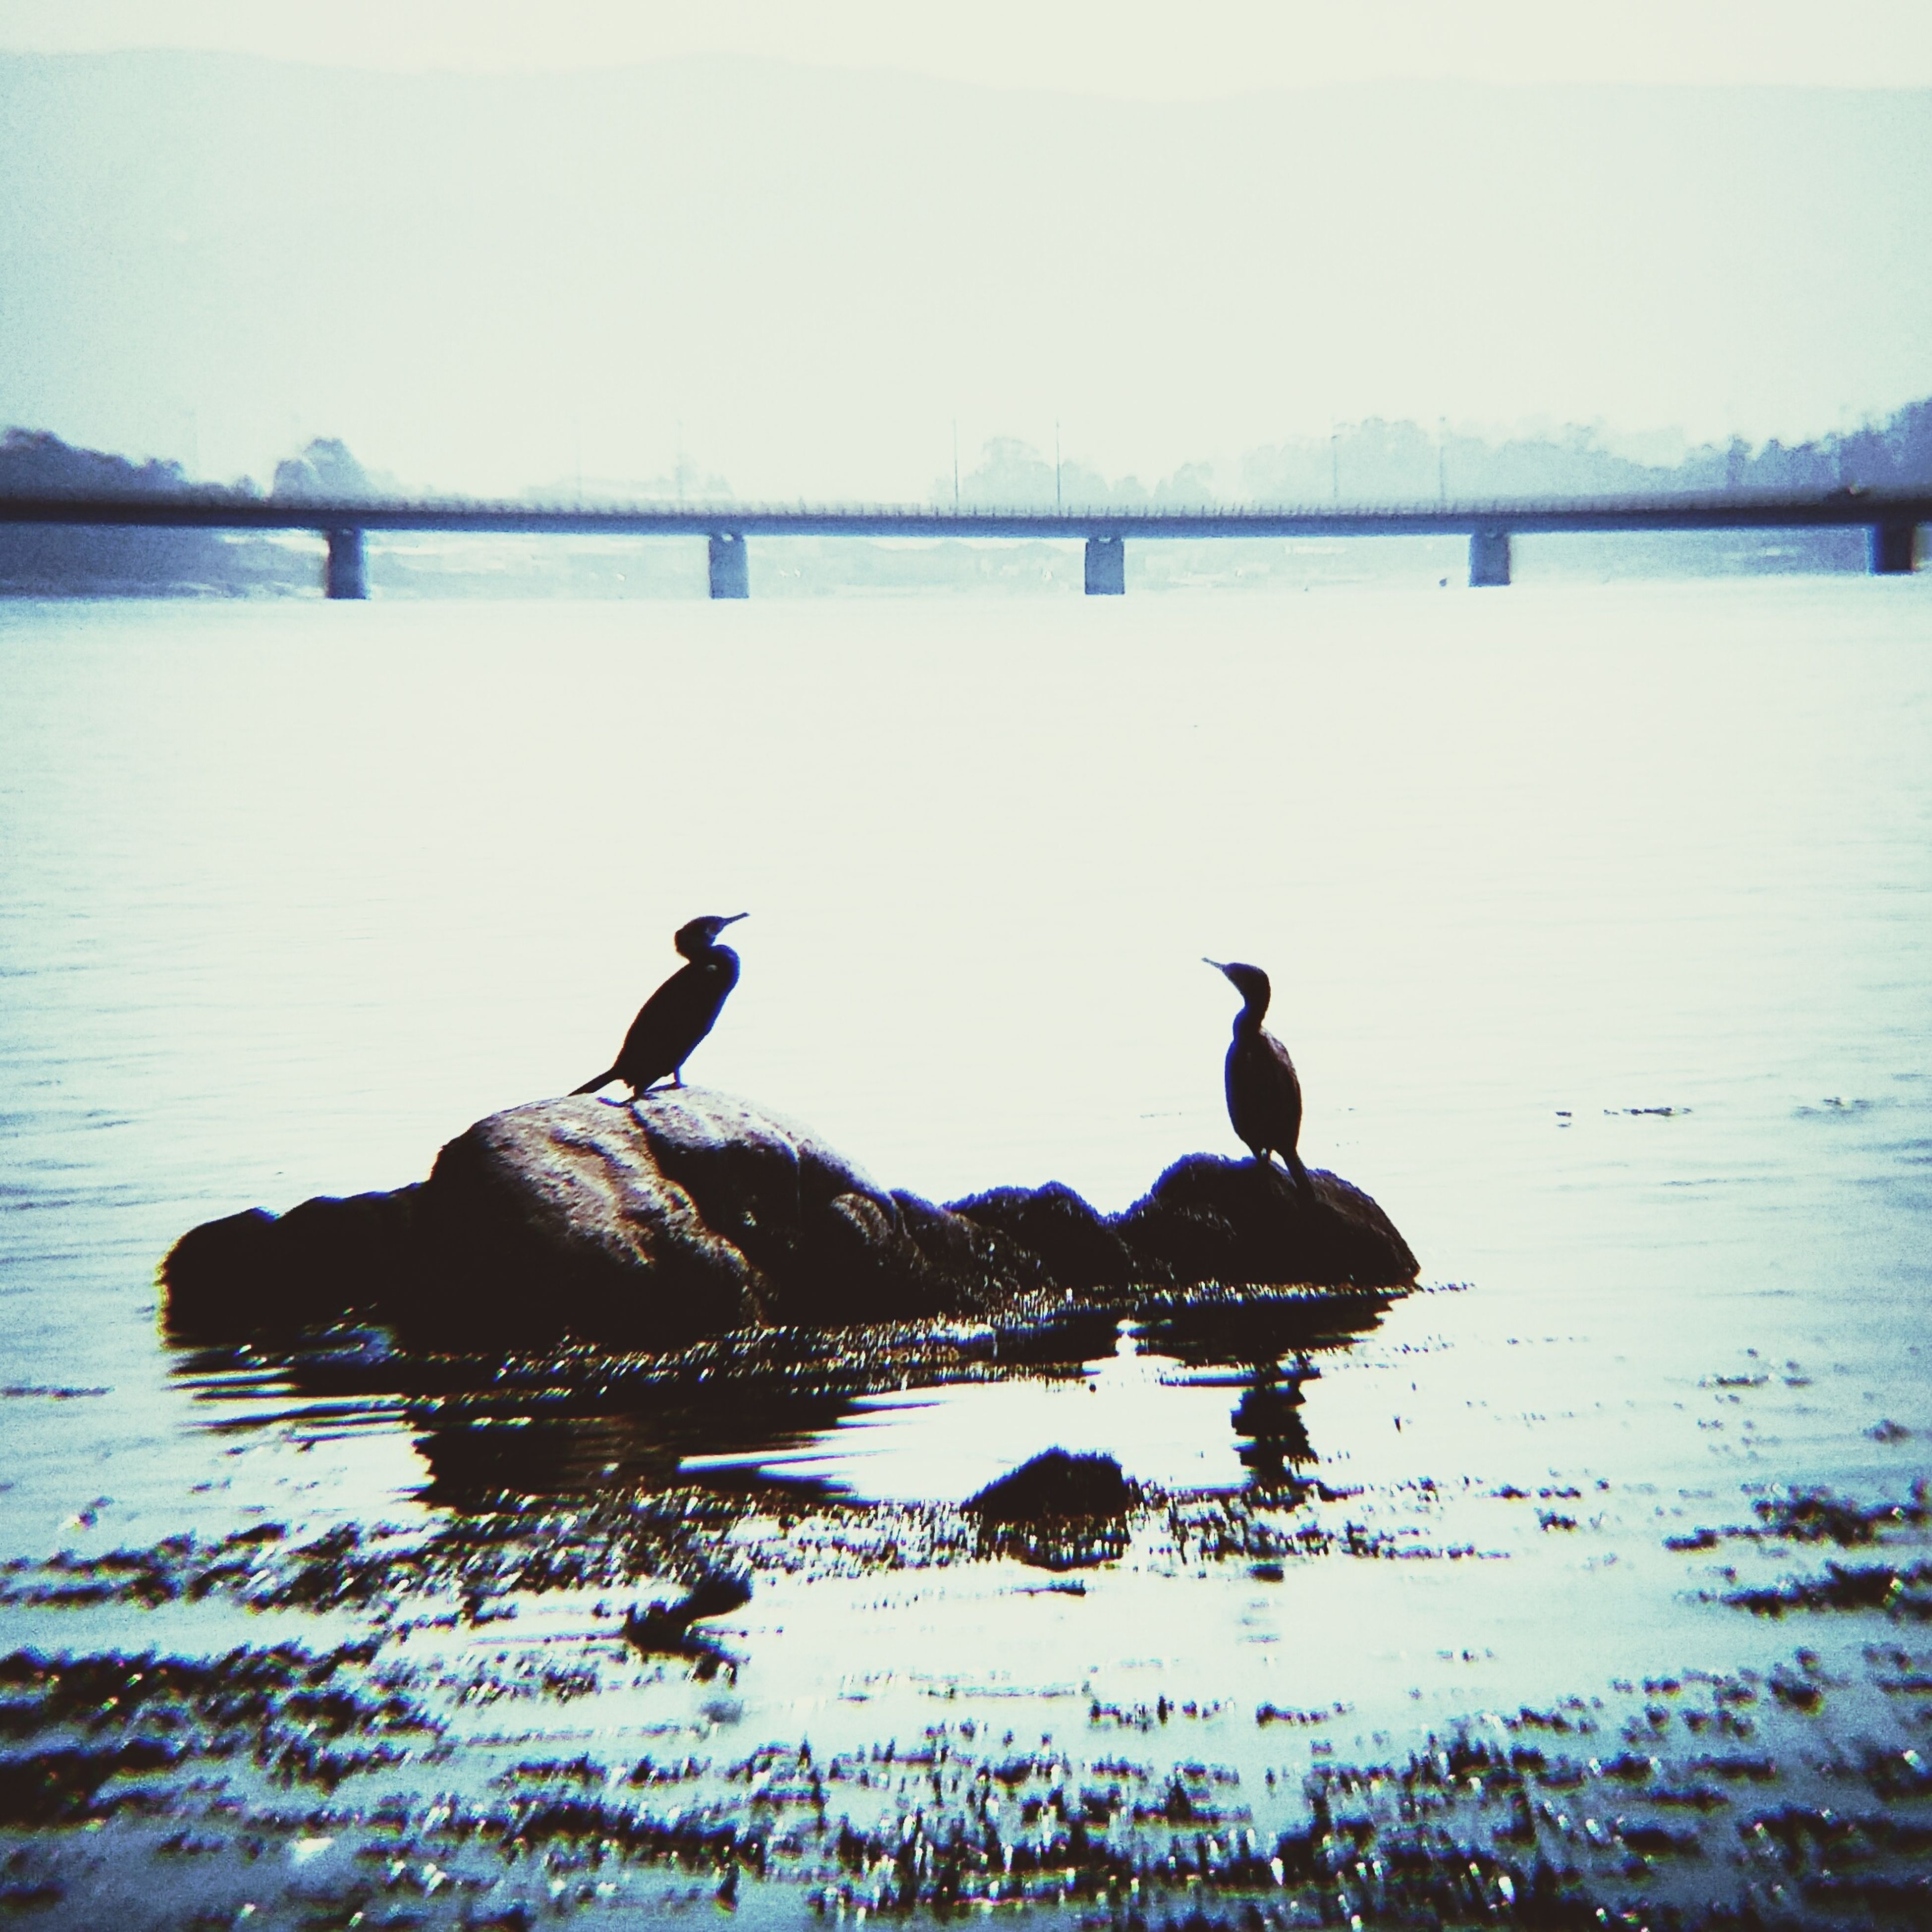 bird, water, animal themes, animals in the wild, wildlife, lake, reflection, nature, duck, waterfront, swimming, perching, tranquility, beauty in nature, tranquil scene, water bird, swan, two animals, clear sky, silhouette